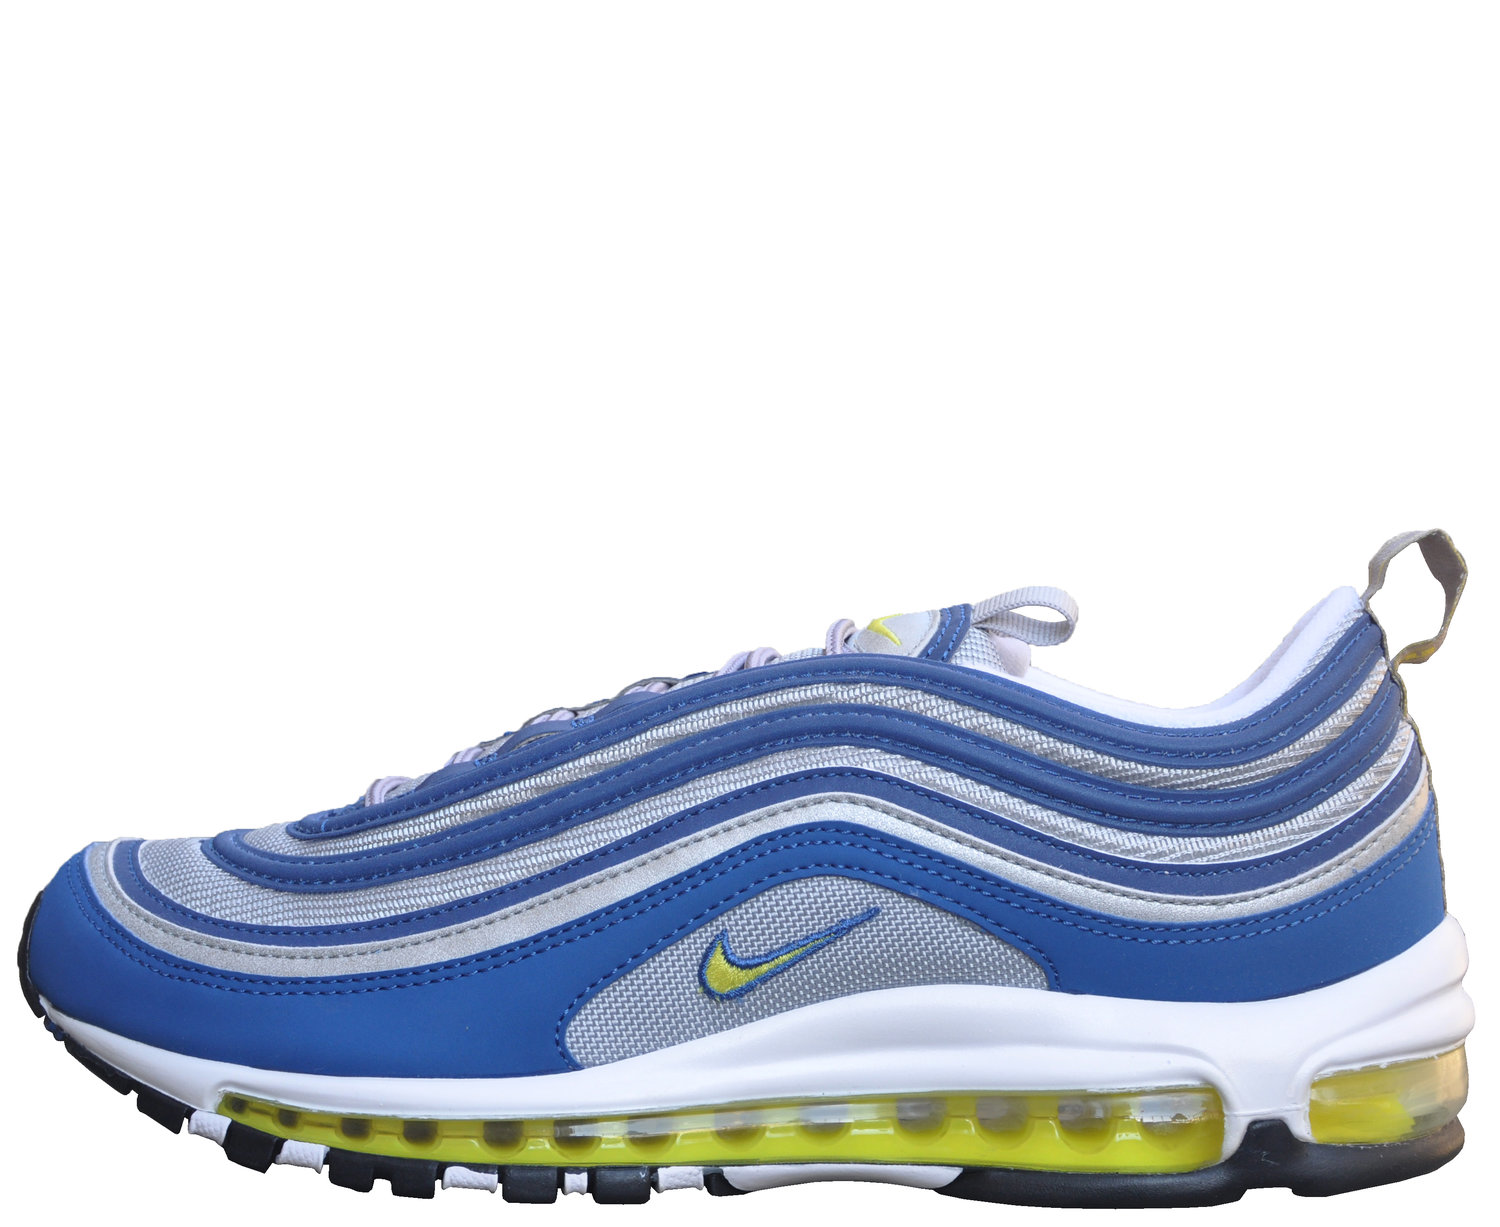 Details about Nike Air Max 97 Atlantic Blue!! 9.5